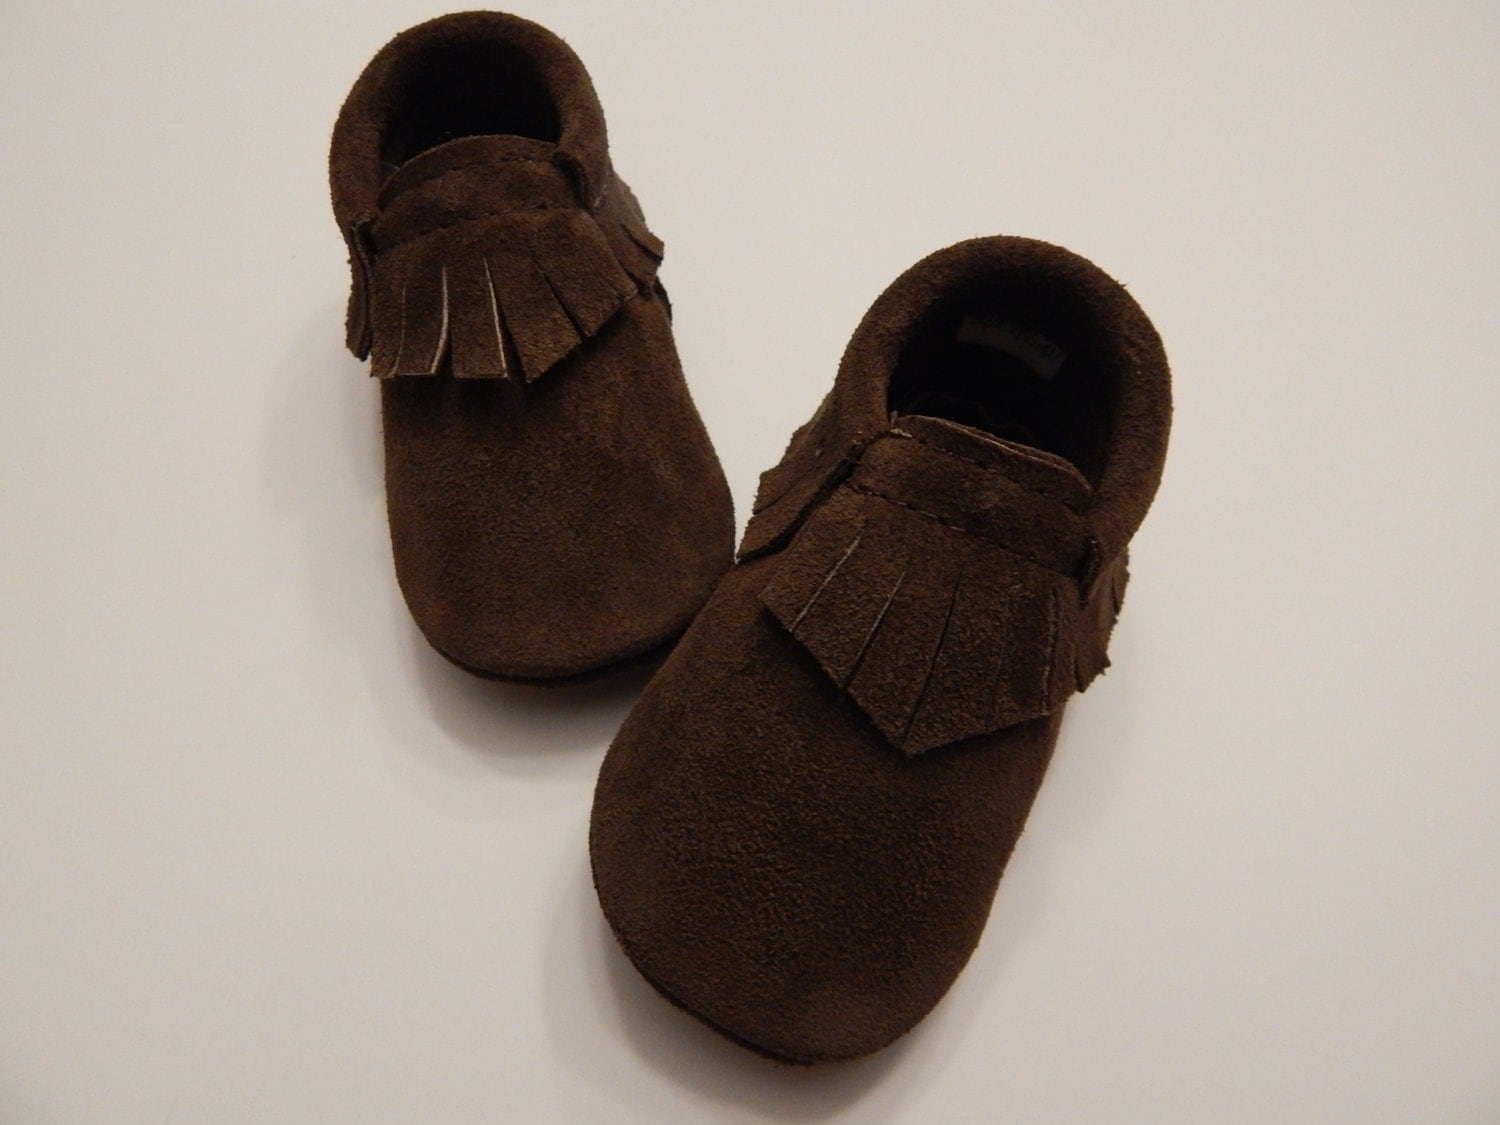 moccasin slippers for toddlers - 28 images - skidders ...